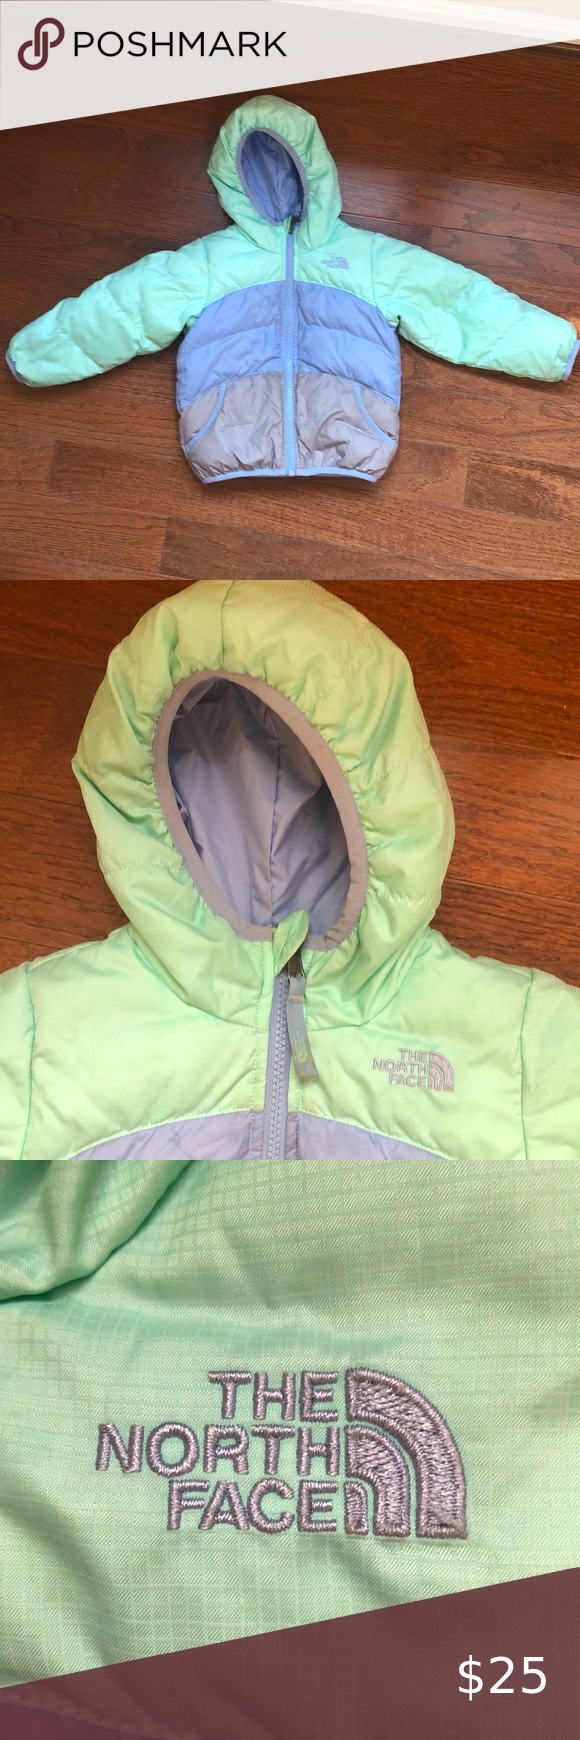 North Face Moondoggy Reversible 3t Down Parka Down Parka Toddler Winter Jackets The North Face [ 1740 x 580 Pixel ]